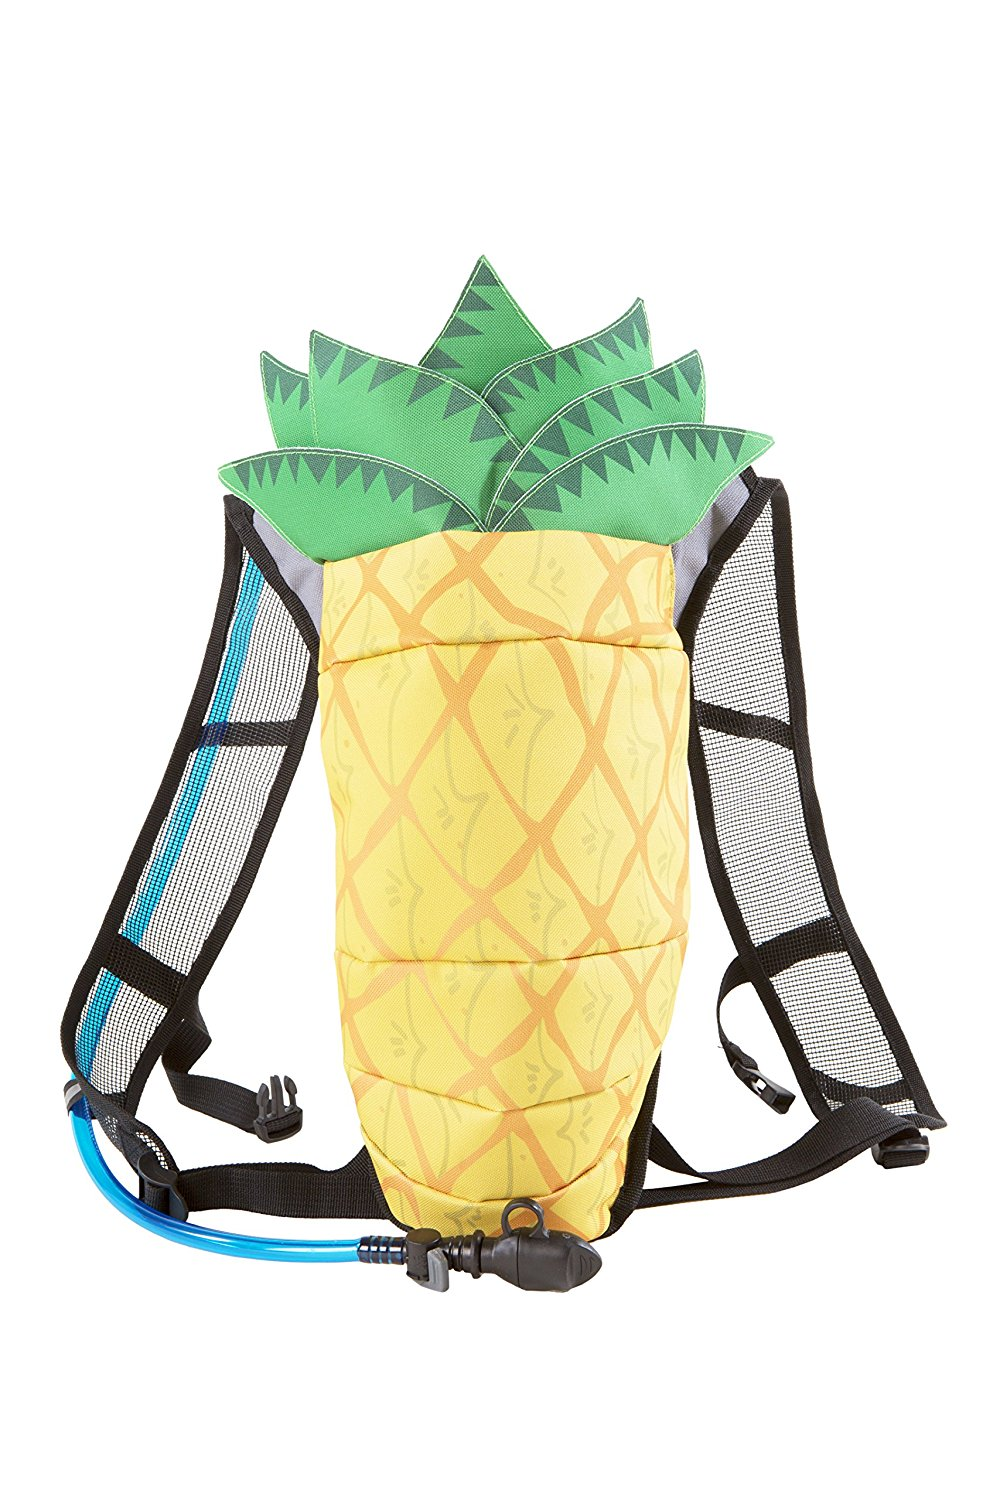 18 Cute pineapple accessories to Buy